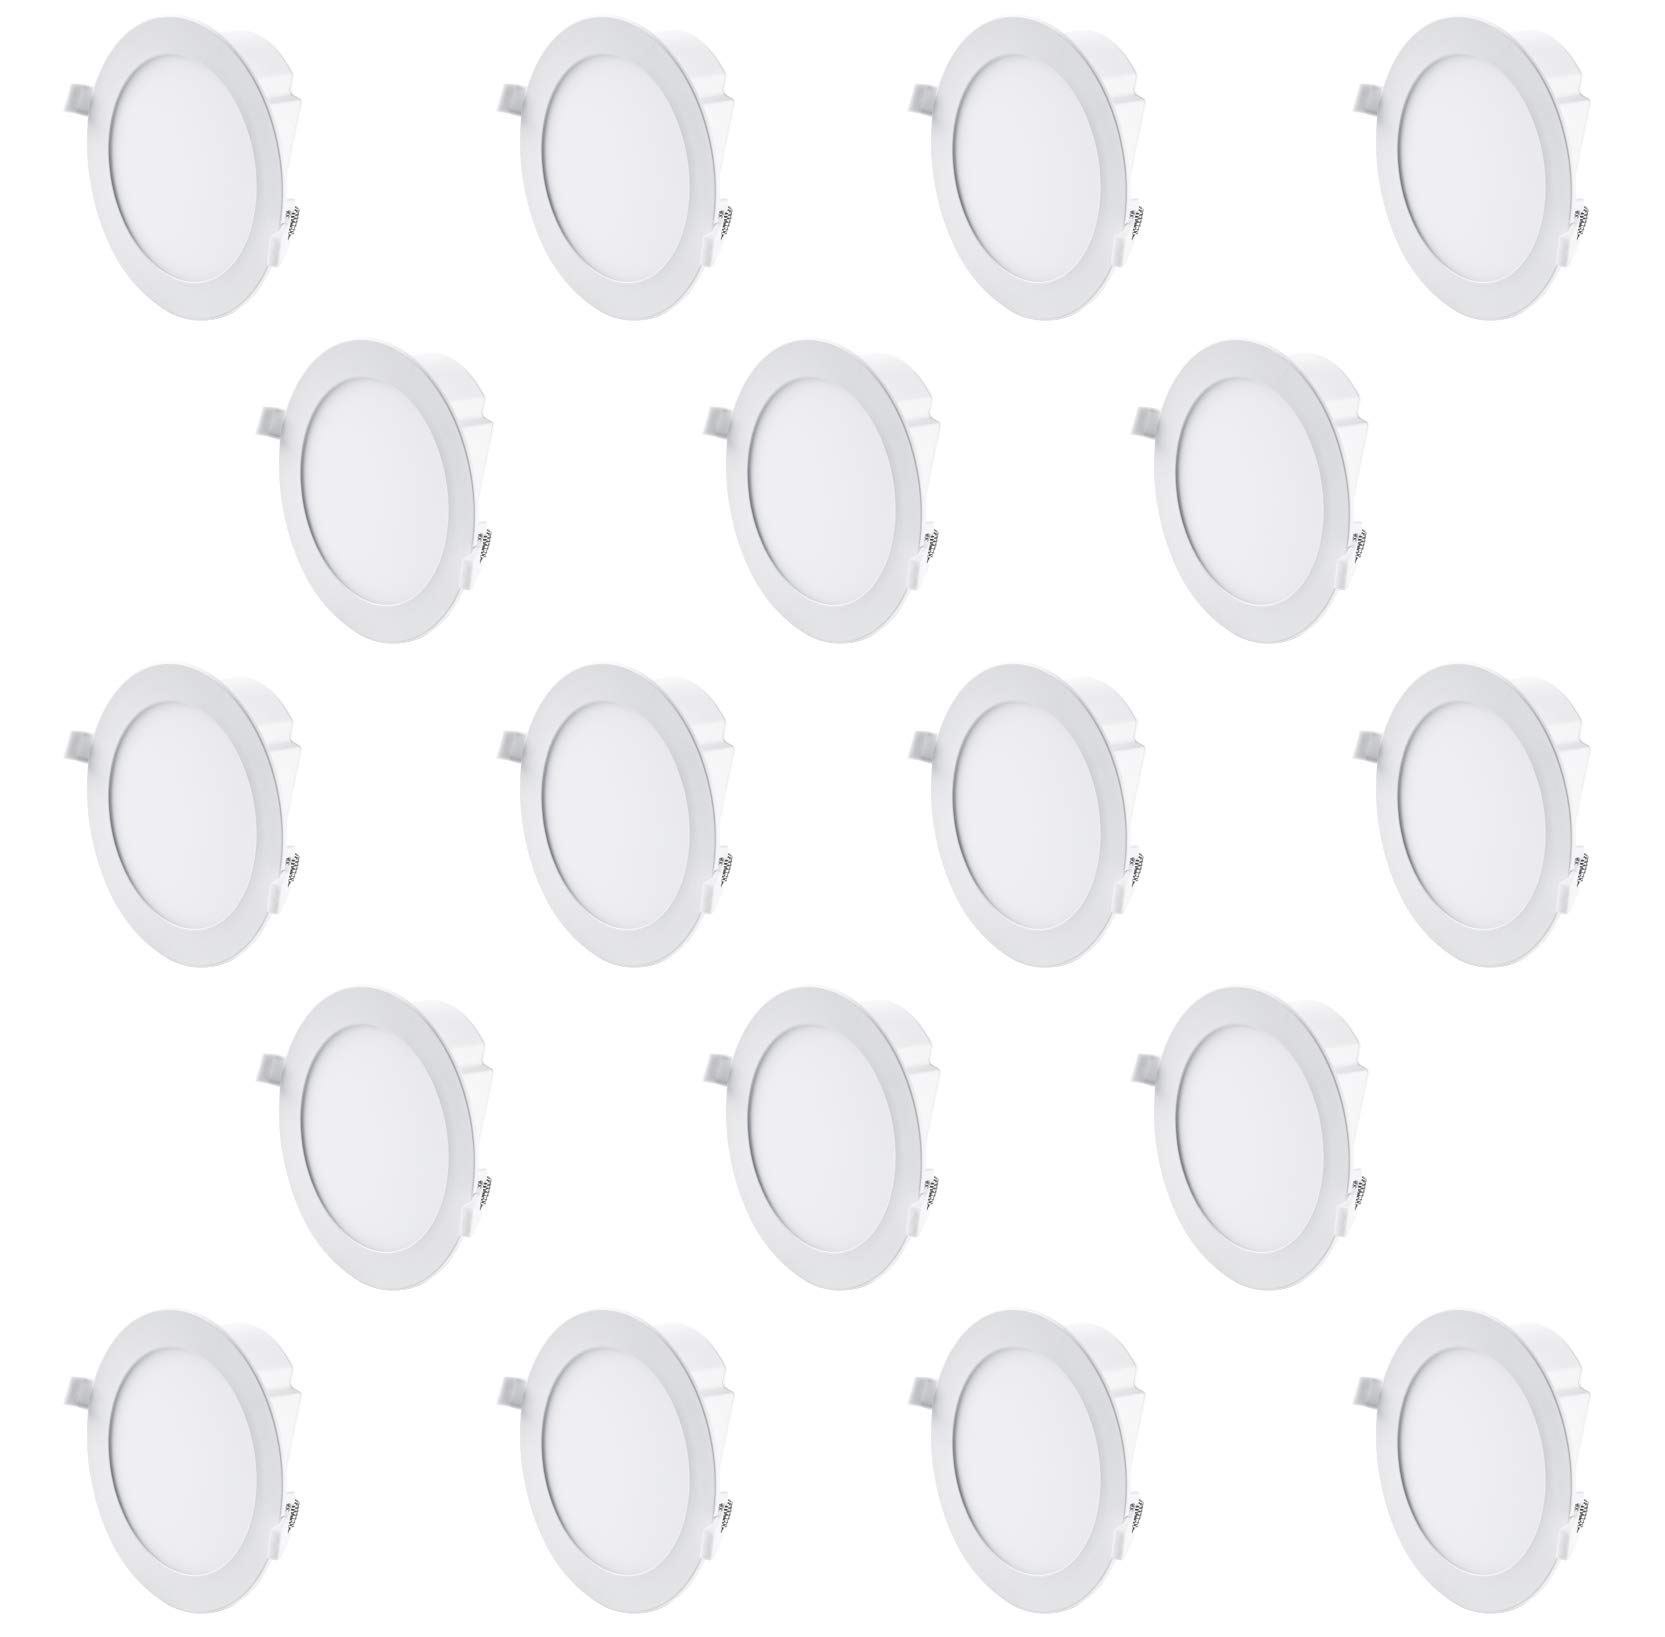 Hyperikon 6 Inch LED Recessed Lights with Junction Box, 65 Watt Replacement (11.6W), Dimmable Downlight, 4000K Daylight, UL, Energy Star, 18 Pack by Hyperikon